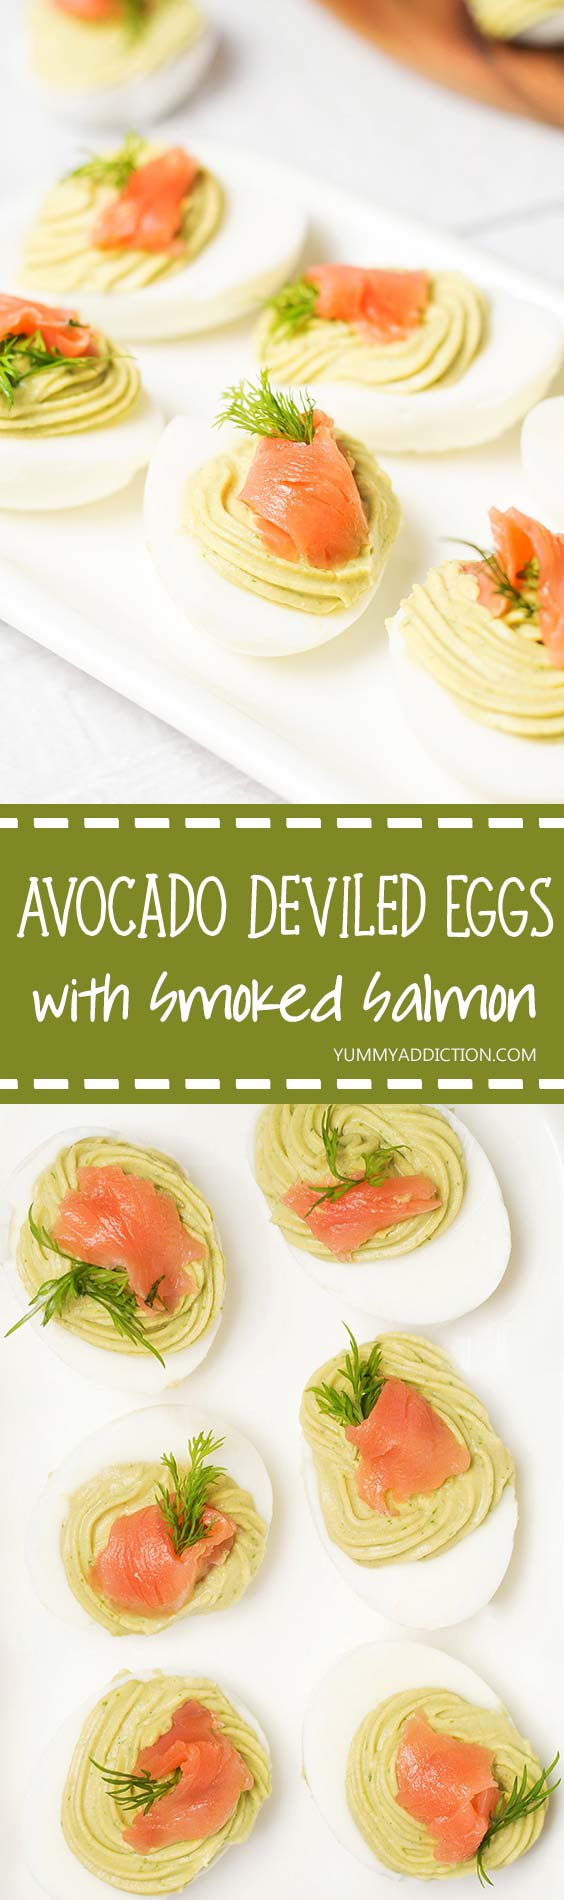 These Avocado Deviled Eggs are topped with smoked salmon and garnished with dill! | yummyaddiction.com